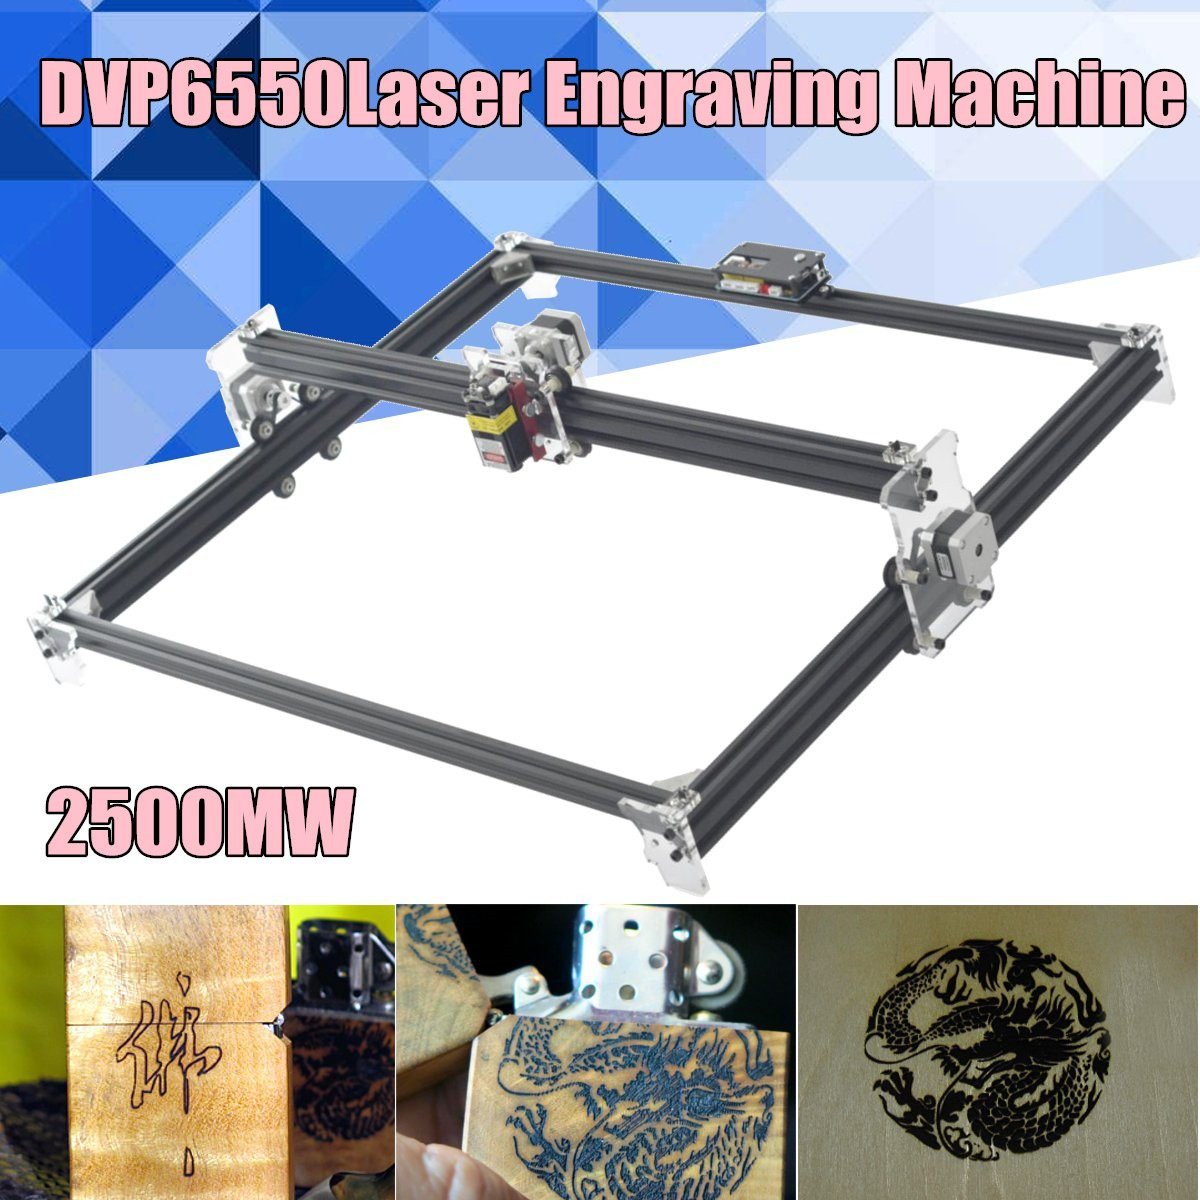 2500MW 65x50cm Laser Engraving Machine Cutting Printer CNC Control LOGO Router CNC Router Best Advanced Toys